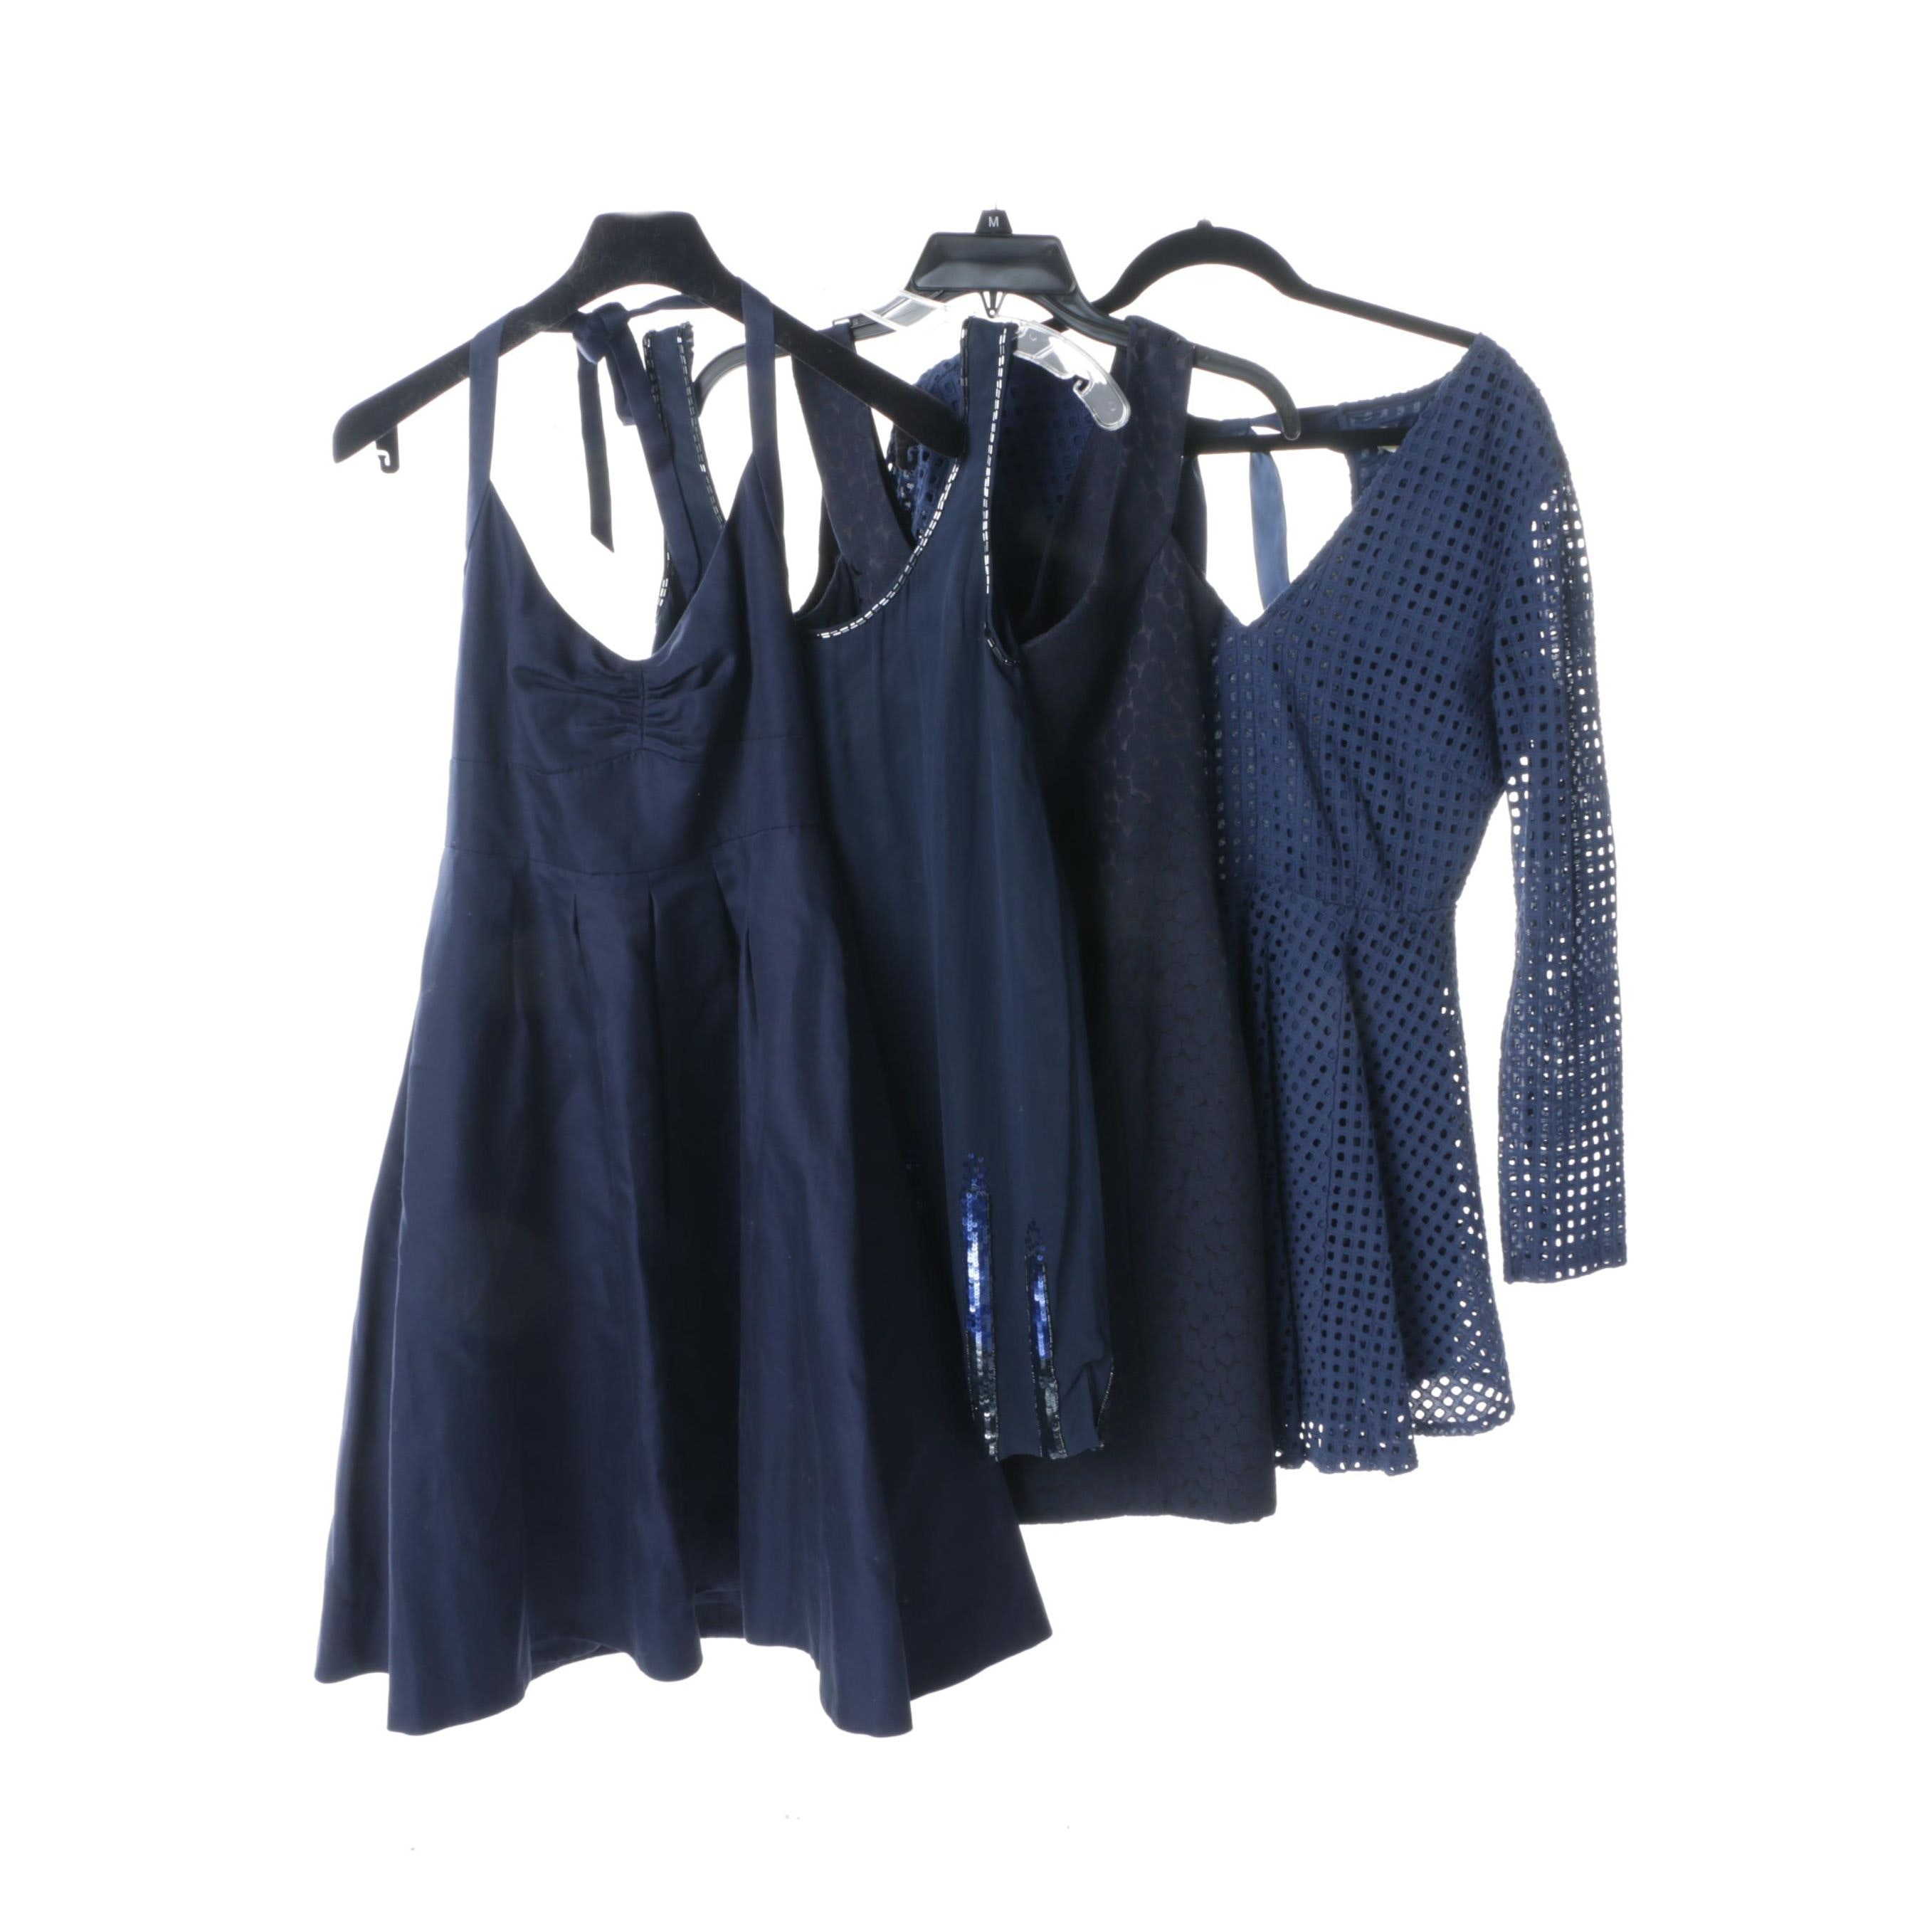 Navy Blue Cocktail Dresses Including Charlotte Ronson